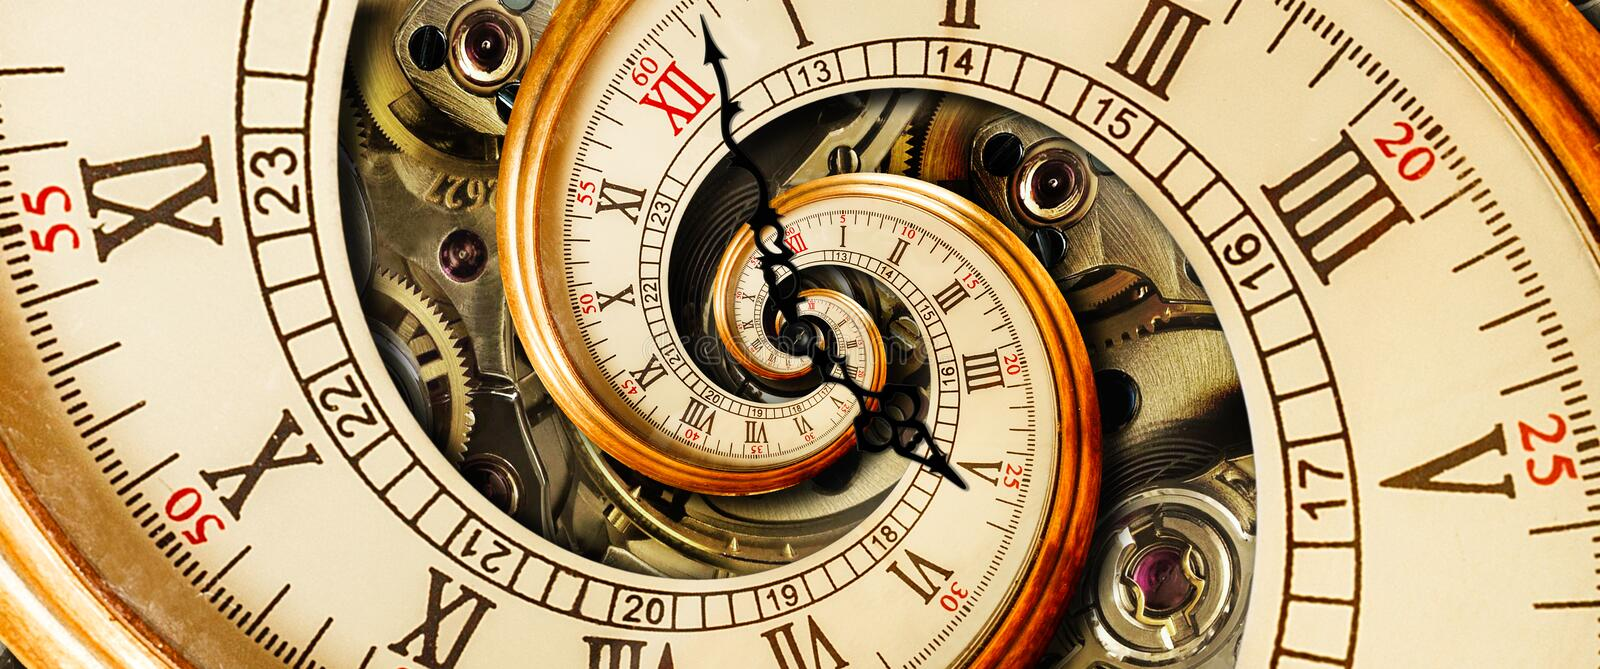 Golden yellow antique old clock spiral abstract fractal. Retro clock with mechanism in the background. Time spiral concept image royalty free stock images